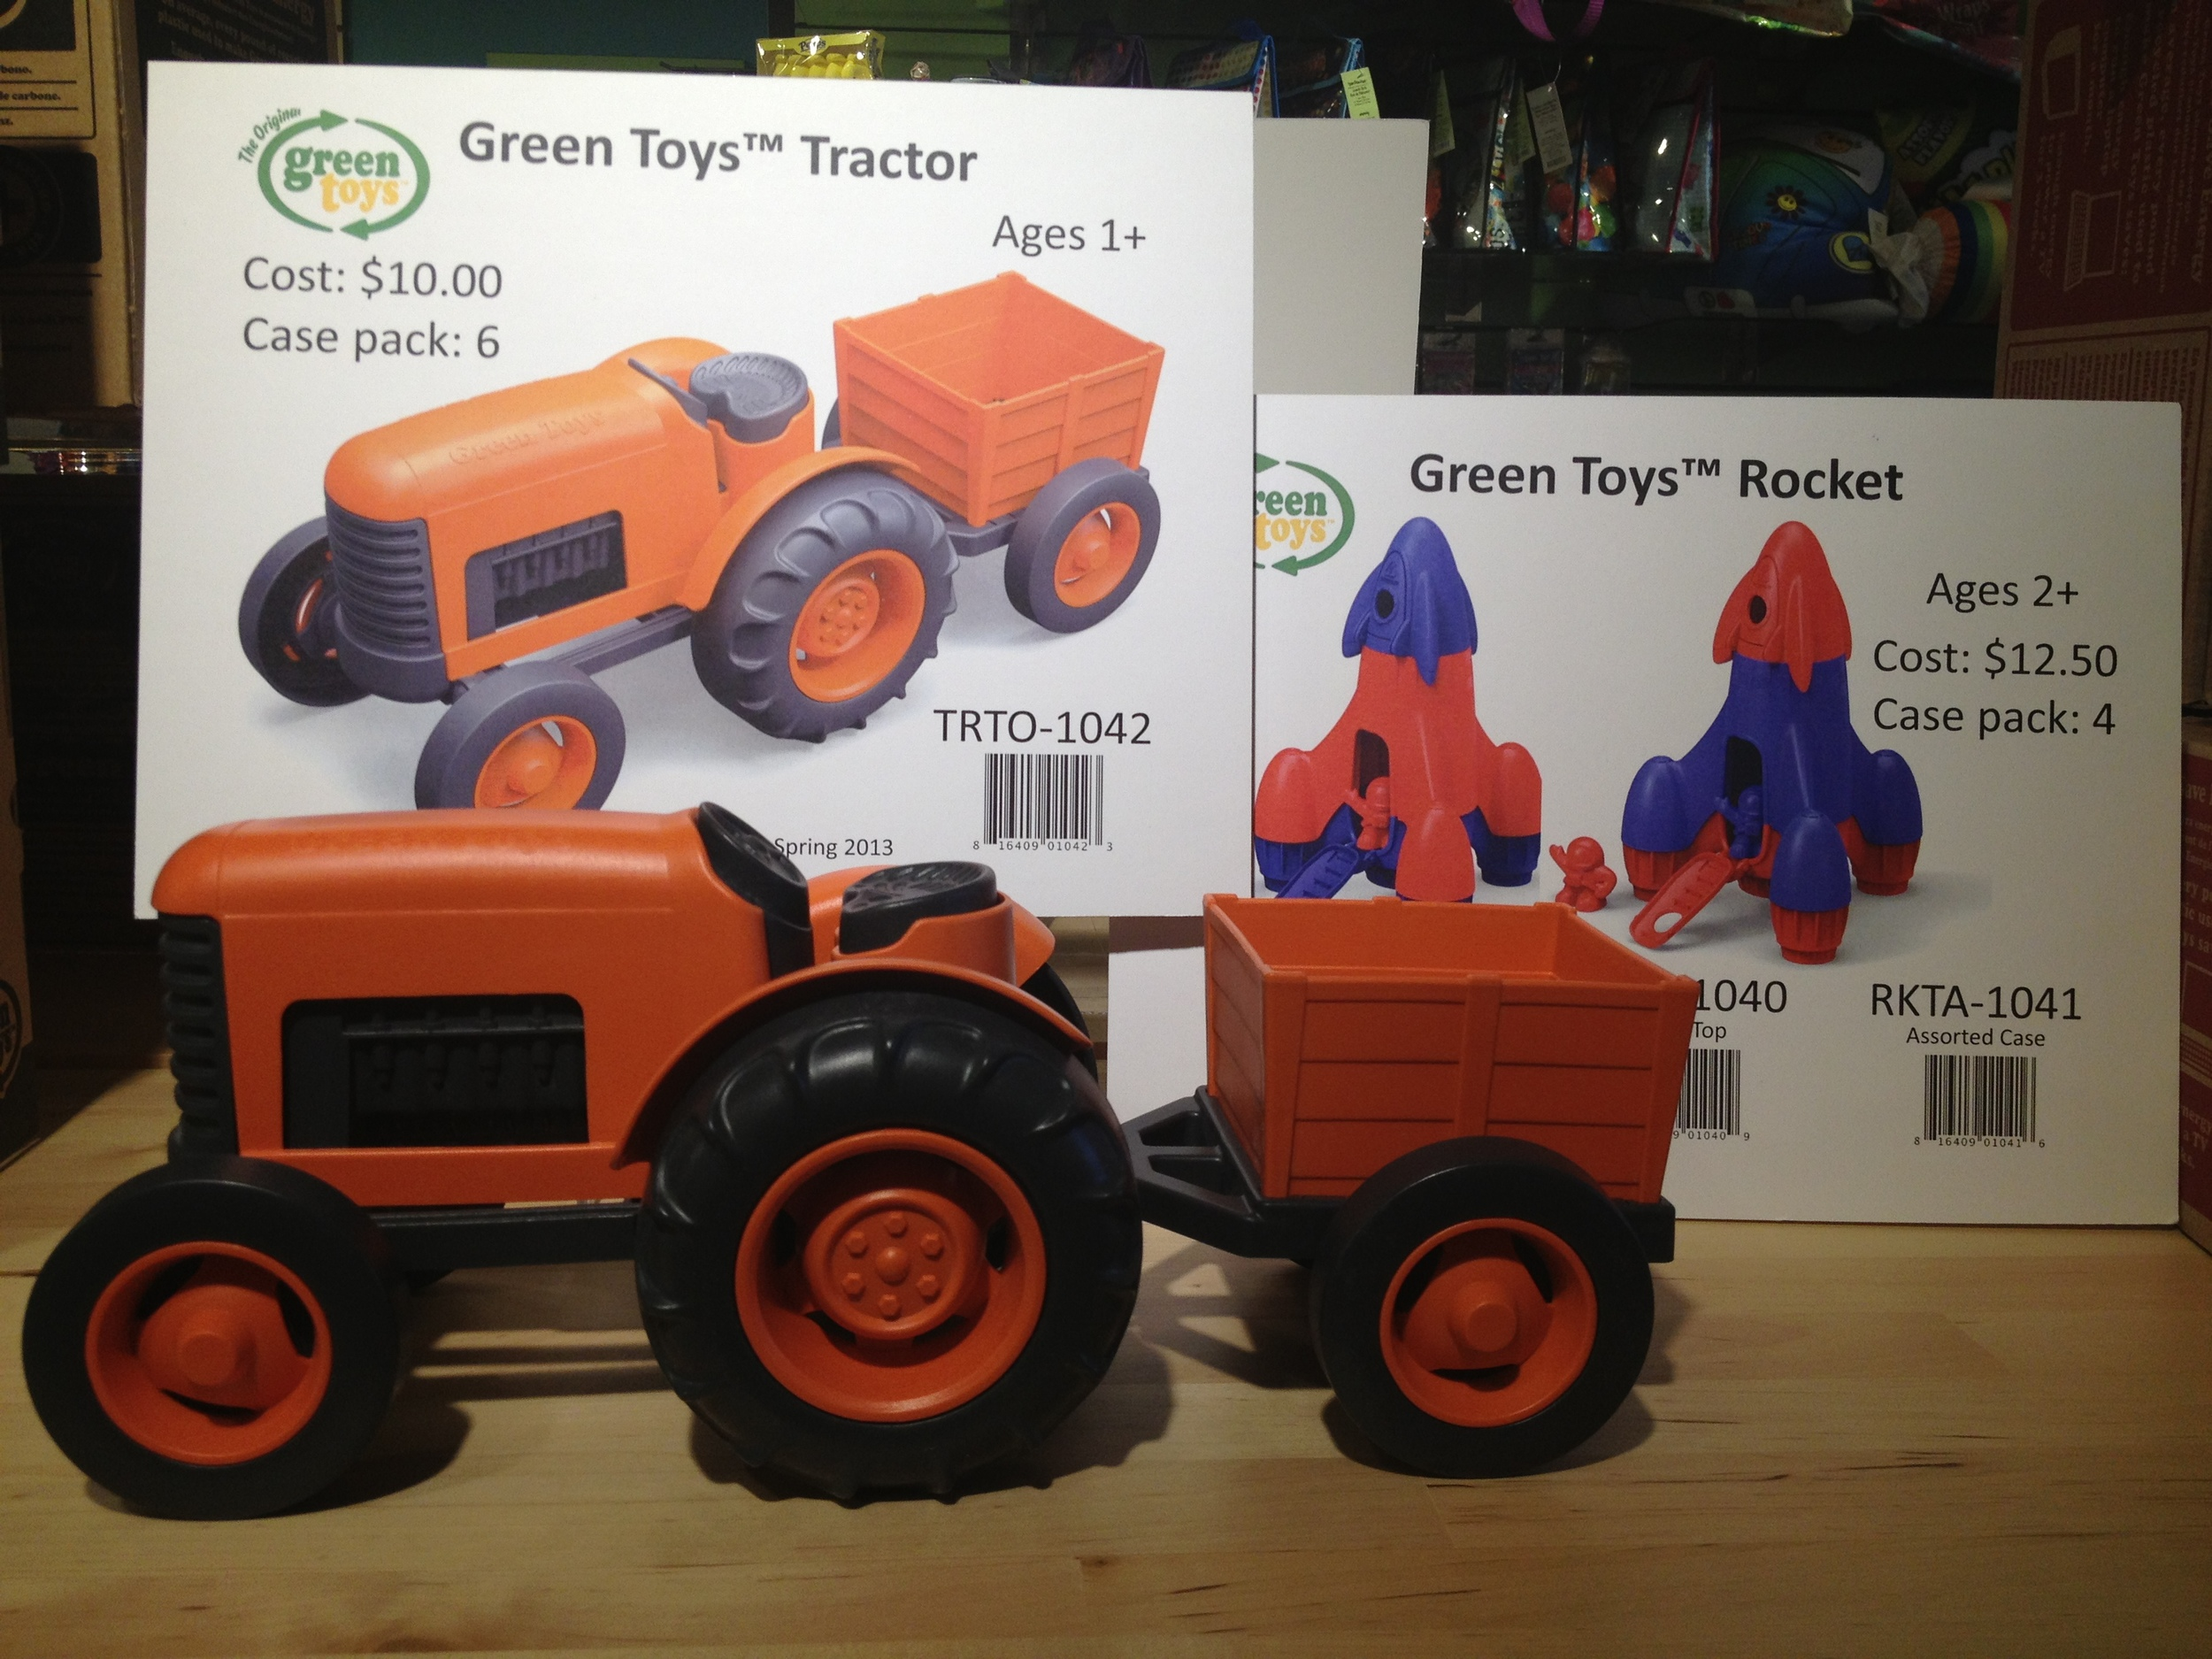 Toys_in_Portland_Green_Toys_Tractor